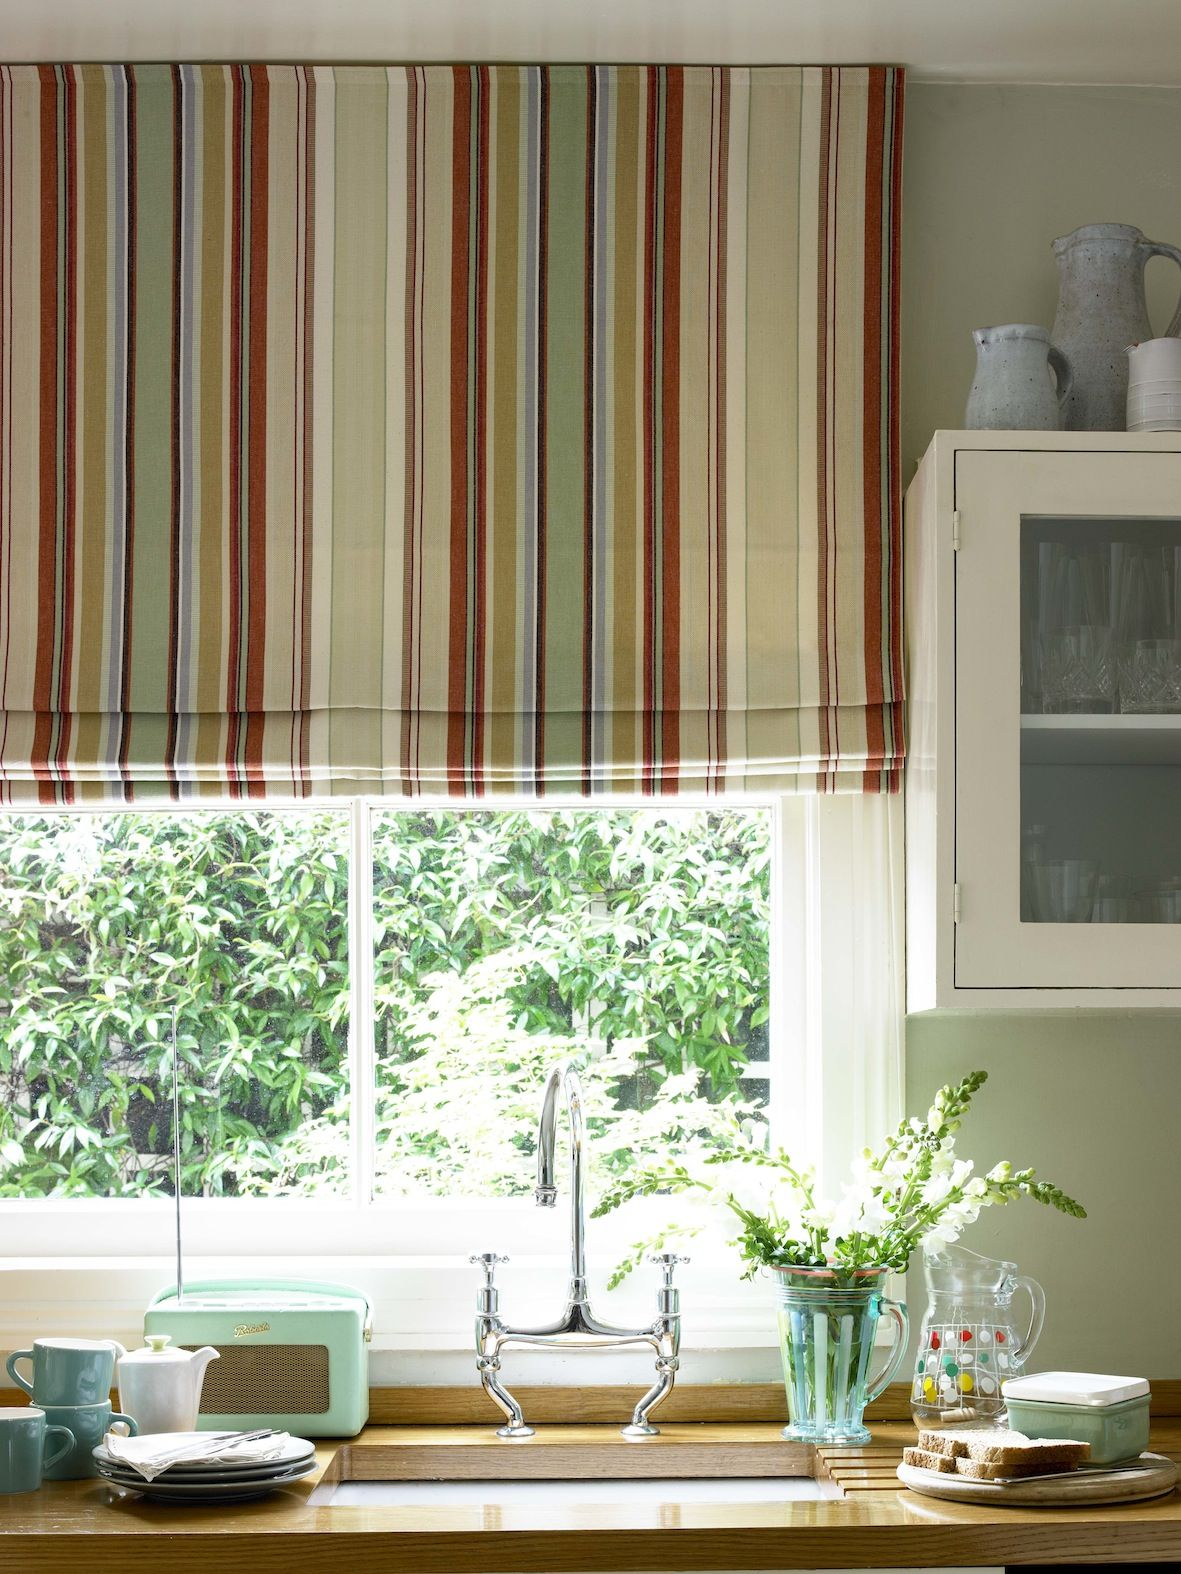 Kitchen curtain ideas kitchen curtain luxury style country kitchen curtains inspiration - Country kitchen curtain ideas ...